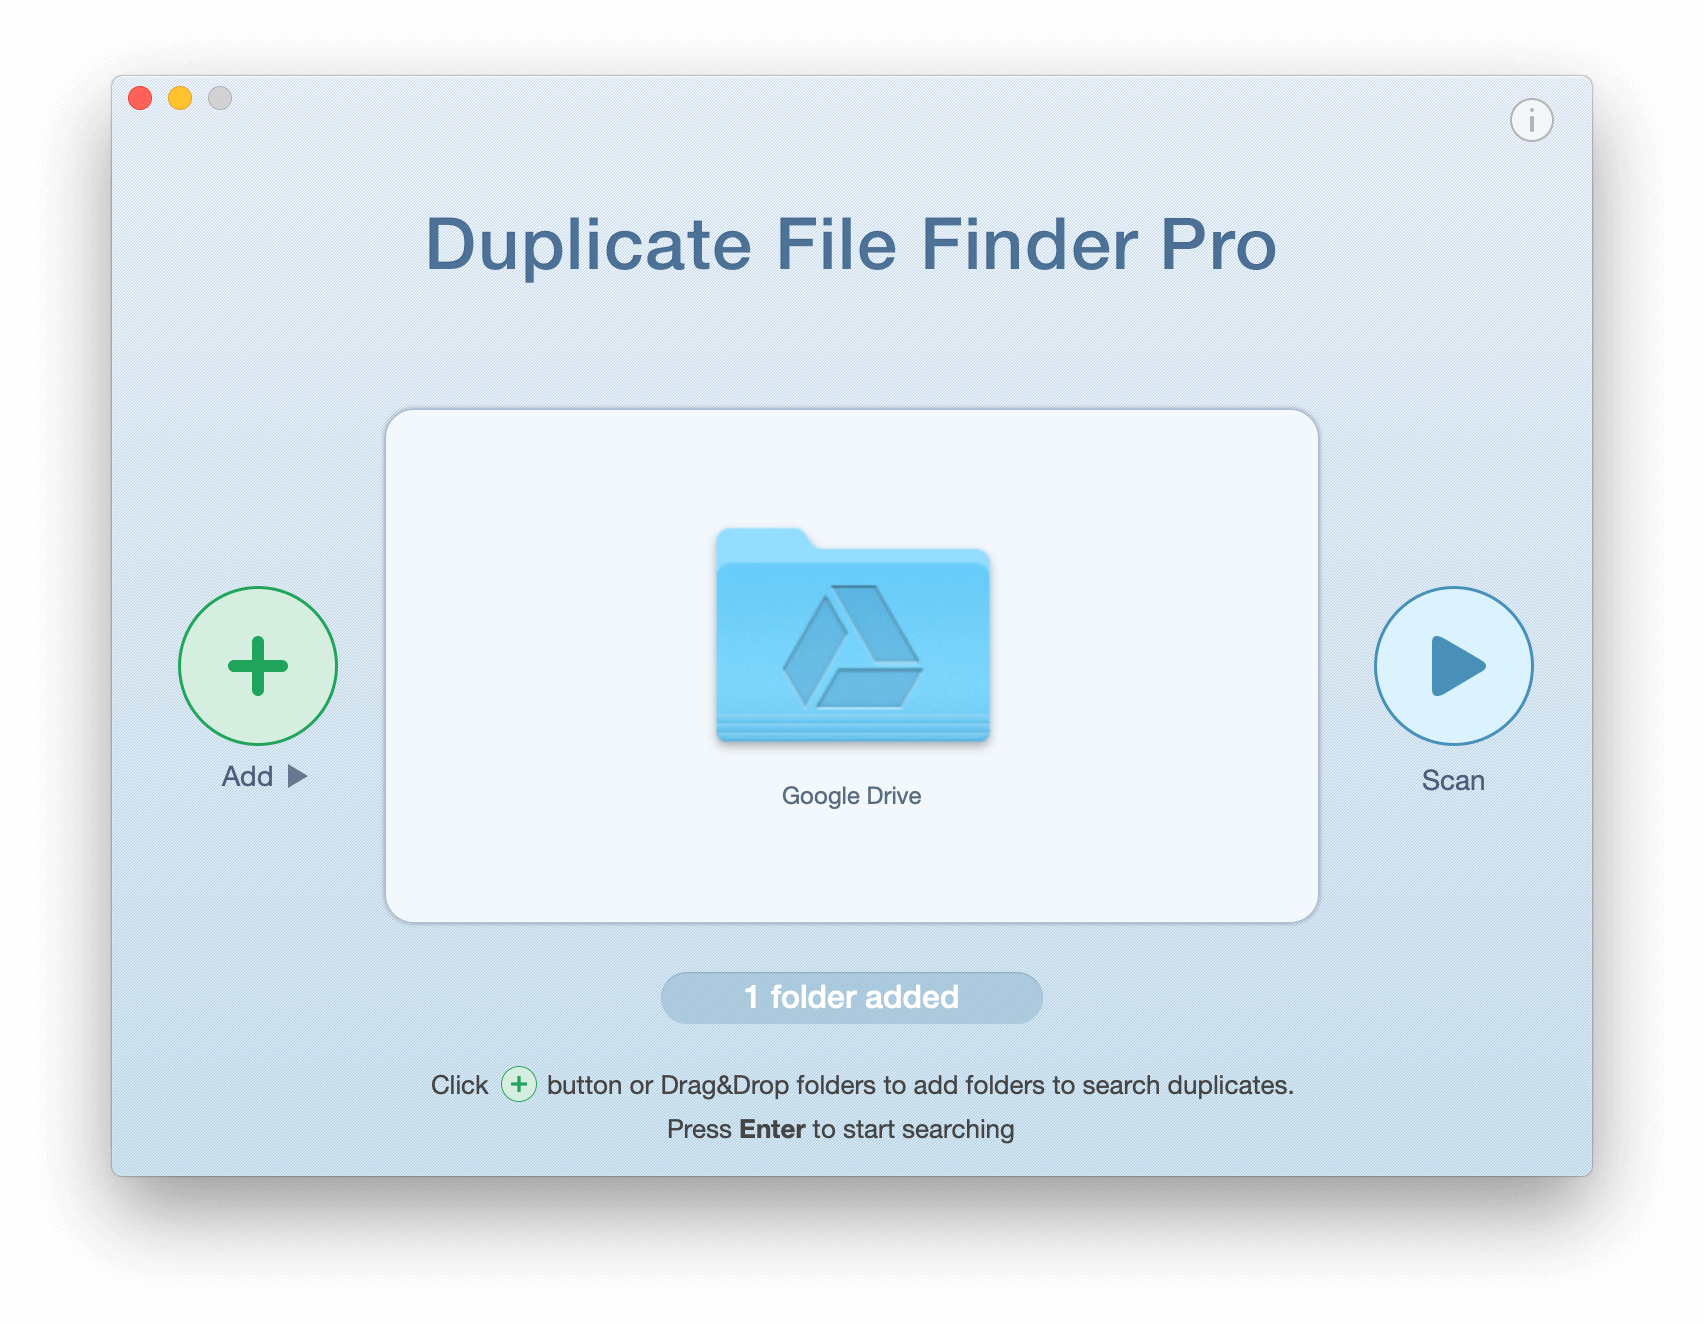 duplicate file finder on Google Drive